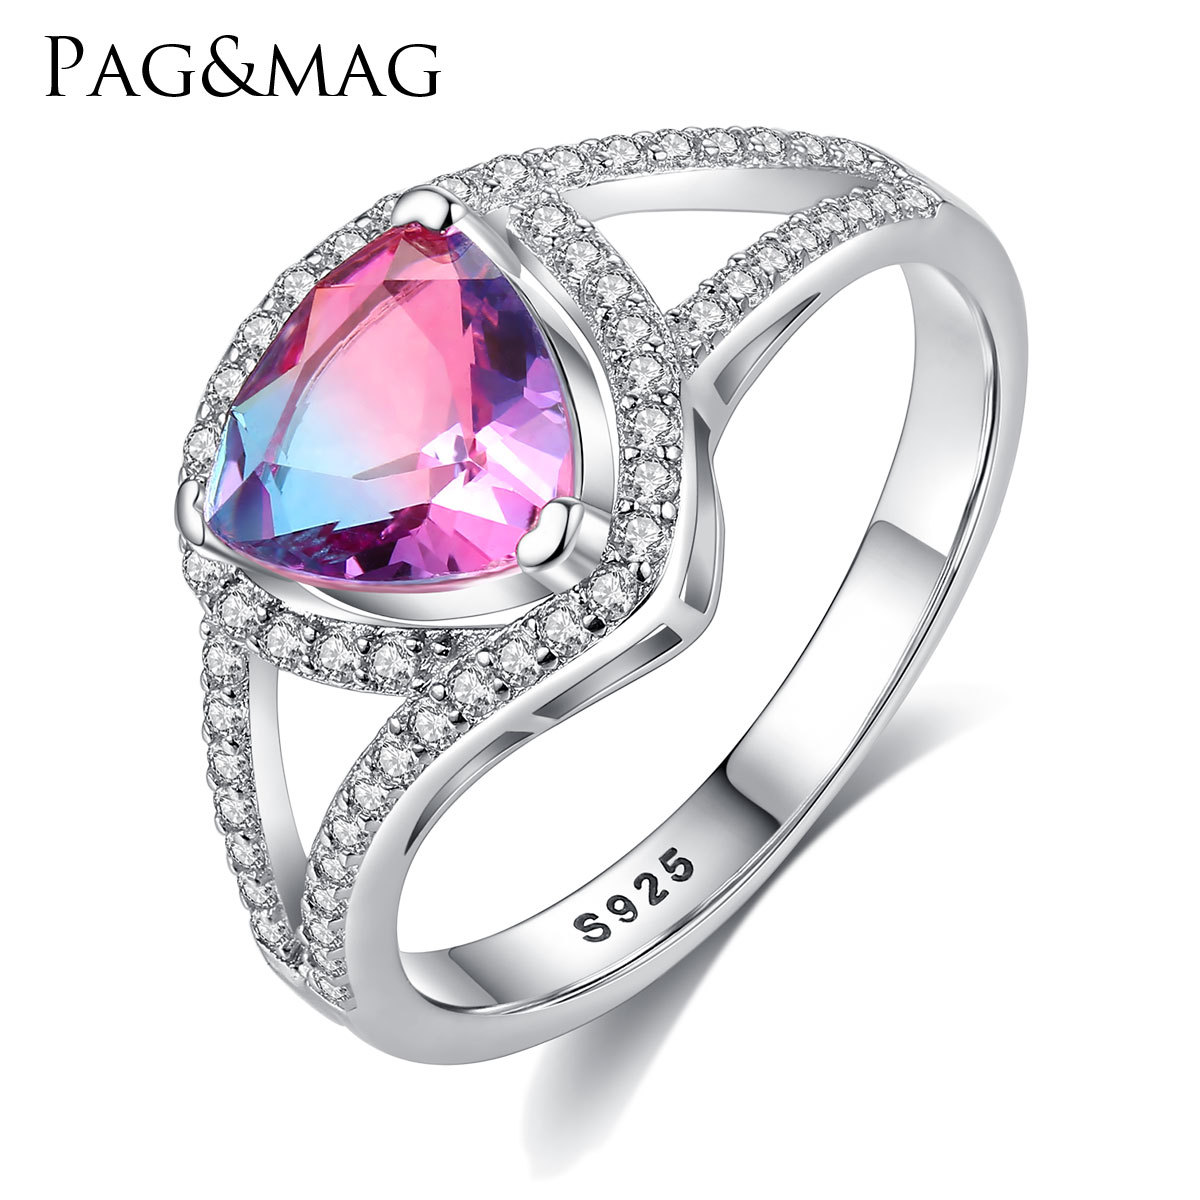 PAG & MAG S925 all in pure silver lovely heart ring set with 3A zircon Korean fashion colorful crystal ring(China)